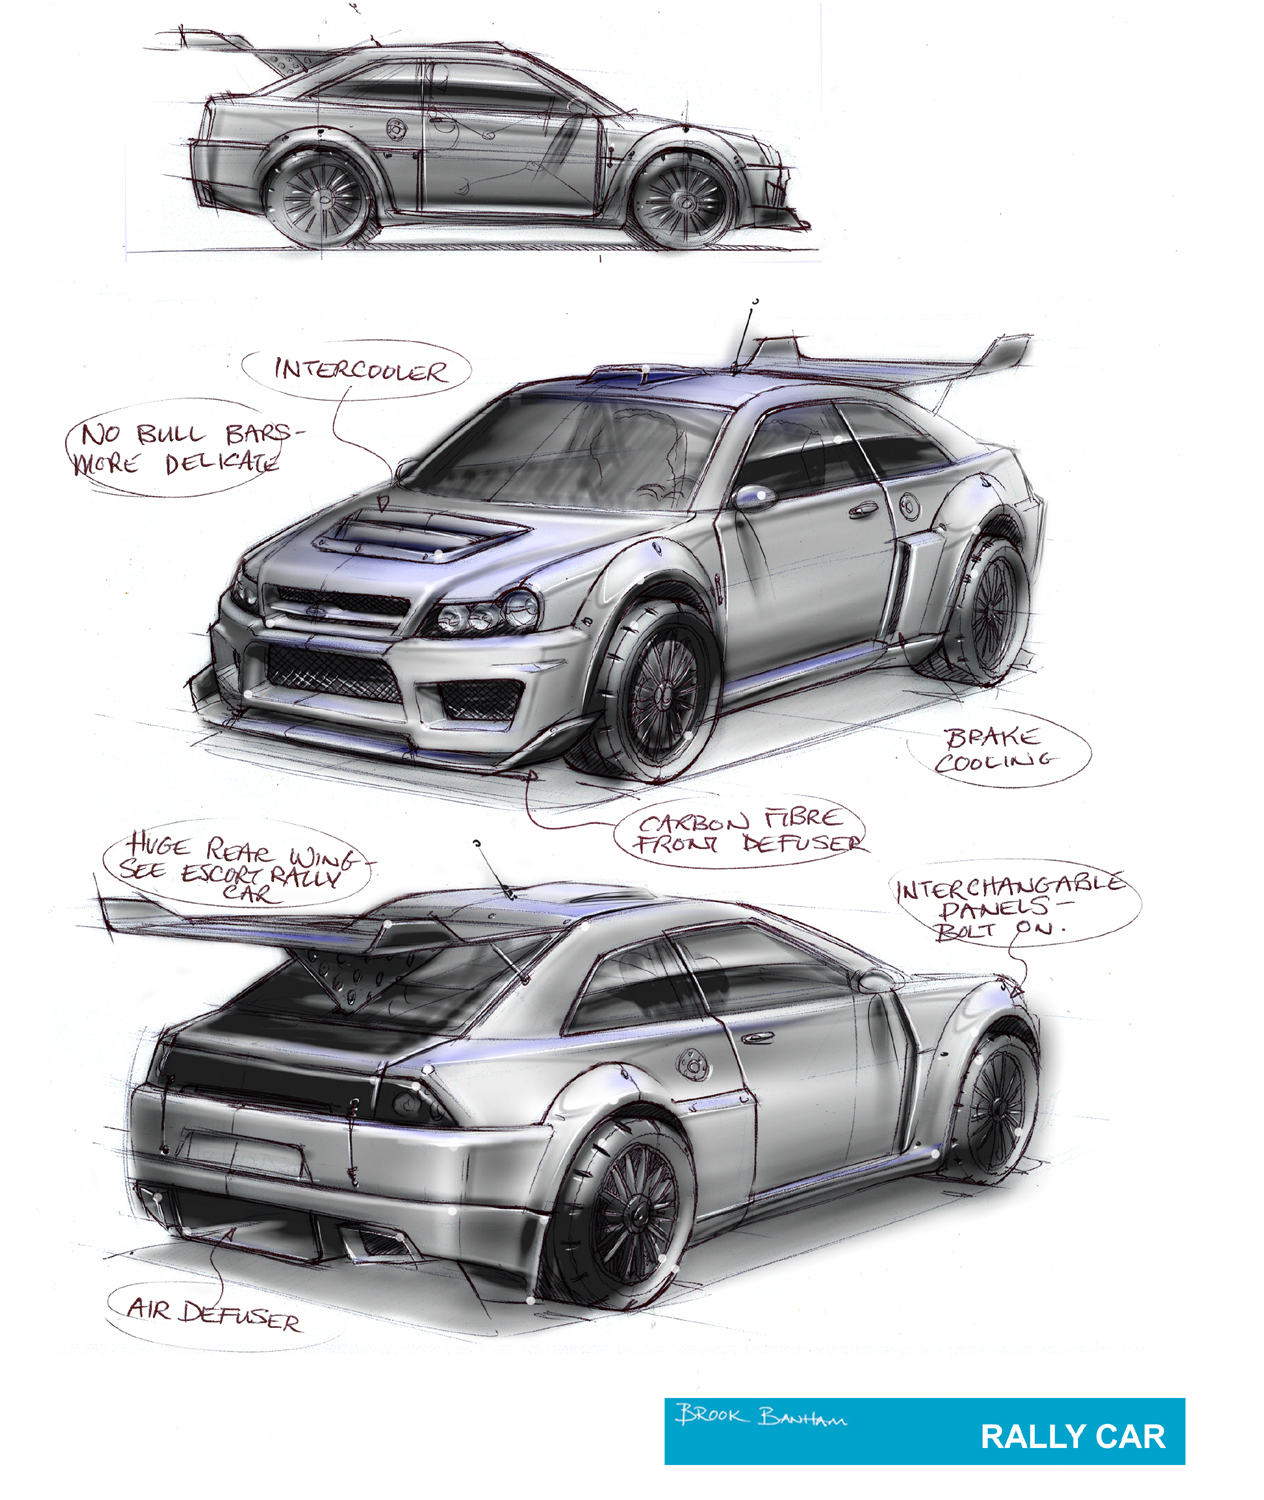 Car design news car design news australian car design and for Coupe architecture